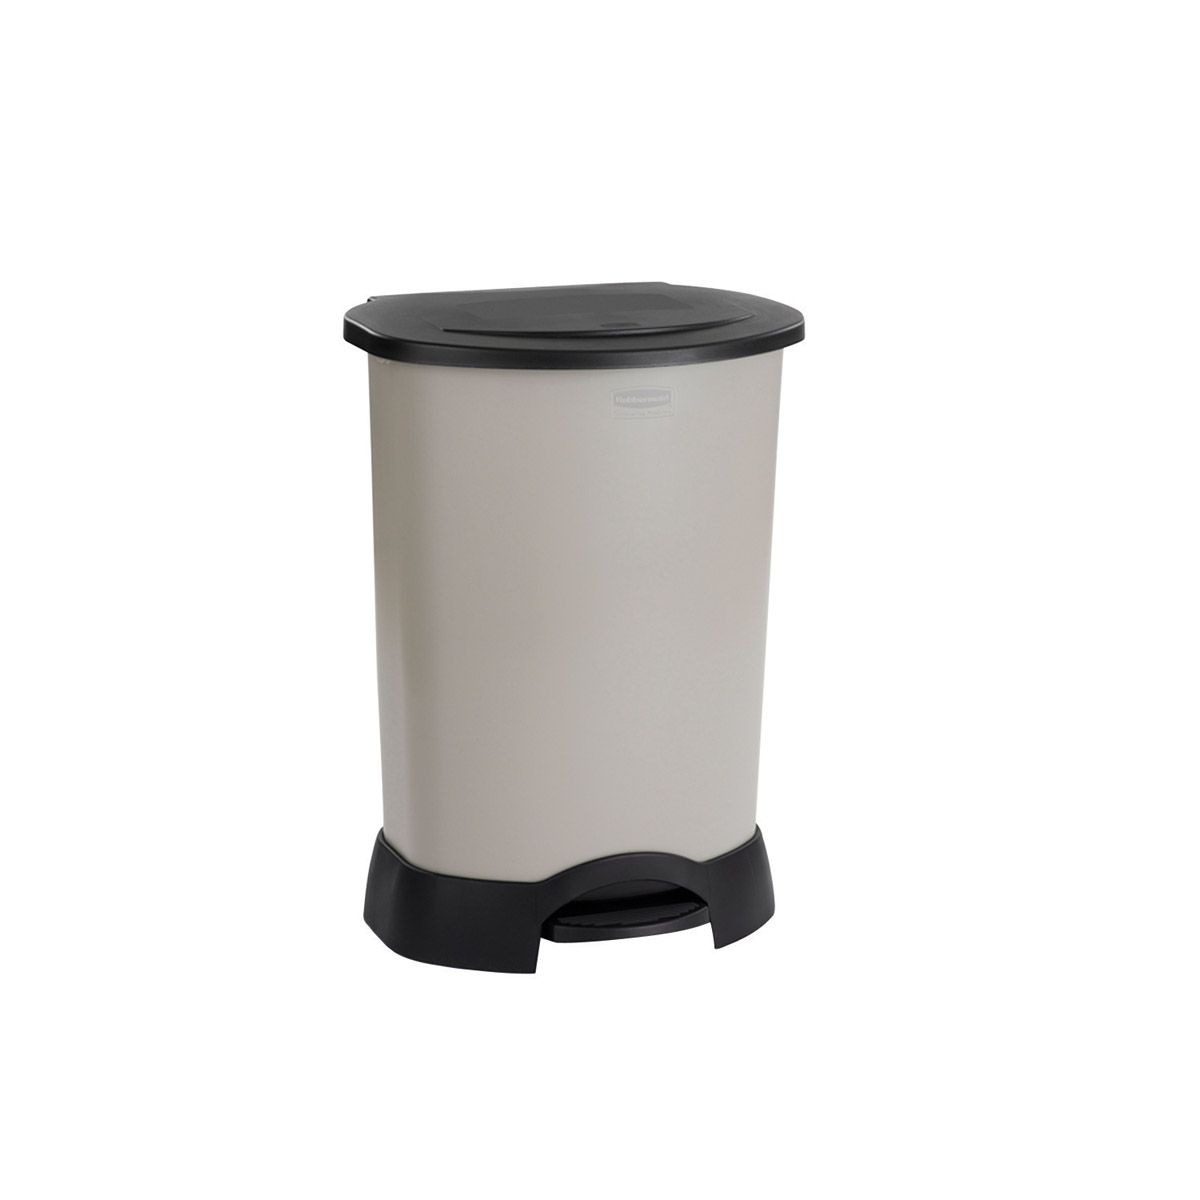 Indoor Garbage Cans Rubbermaid Indoor Utility Step On Waste Can Step On